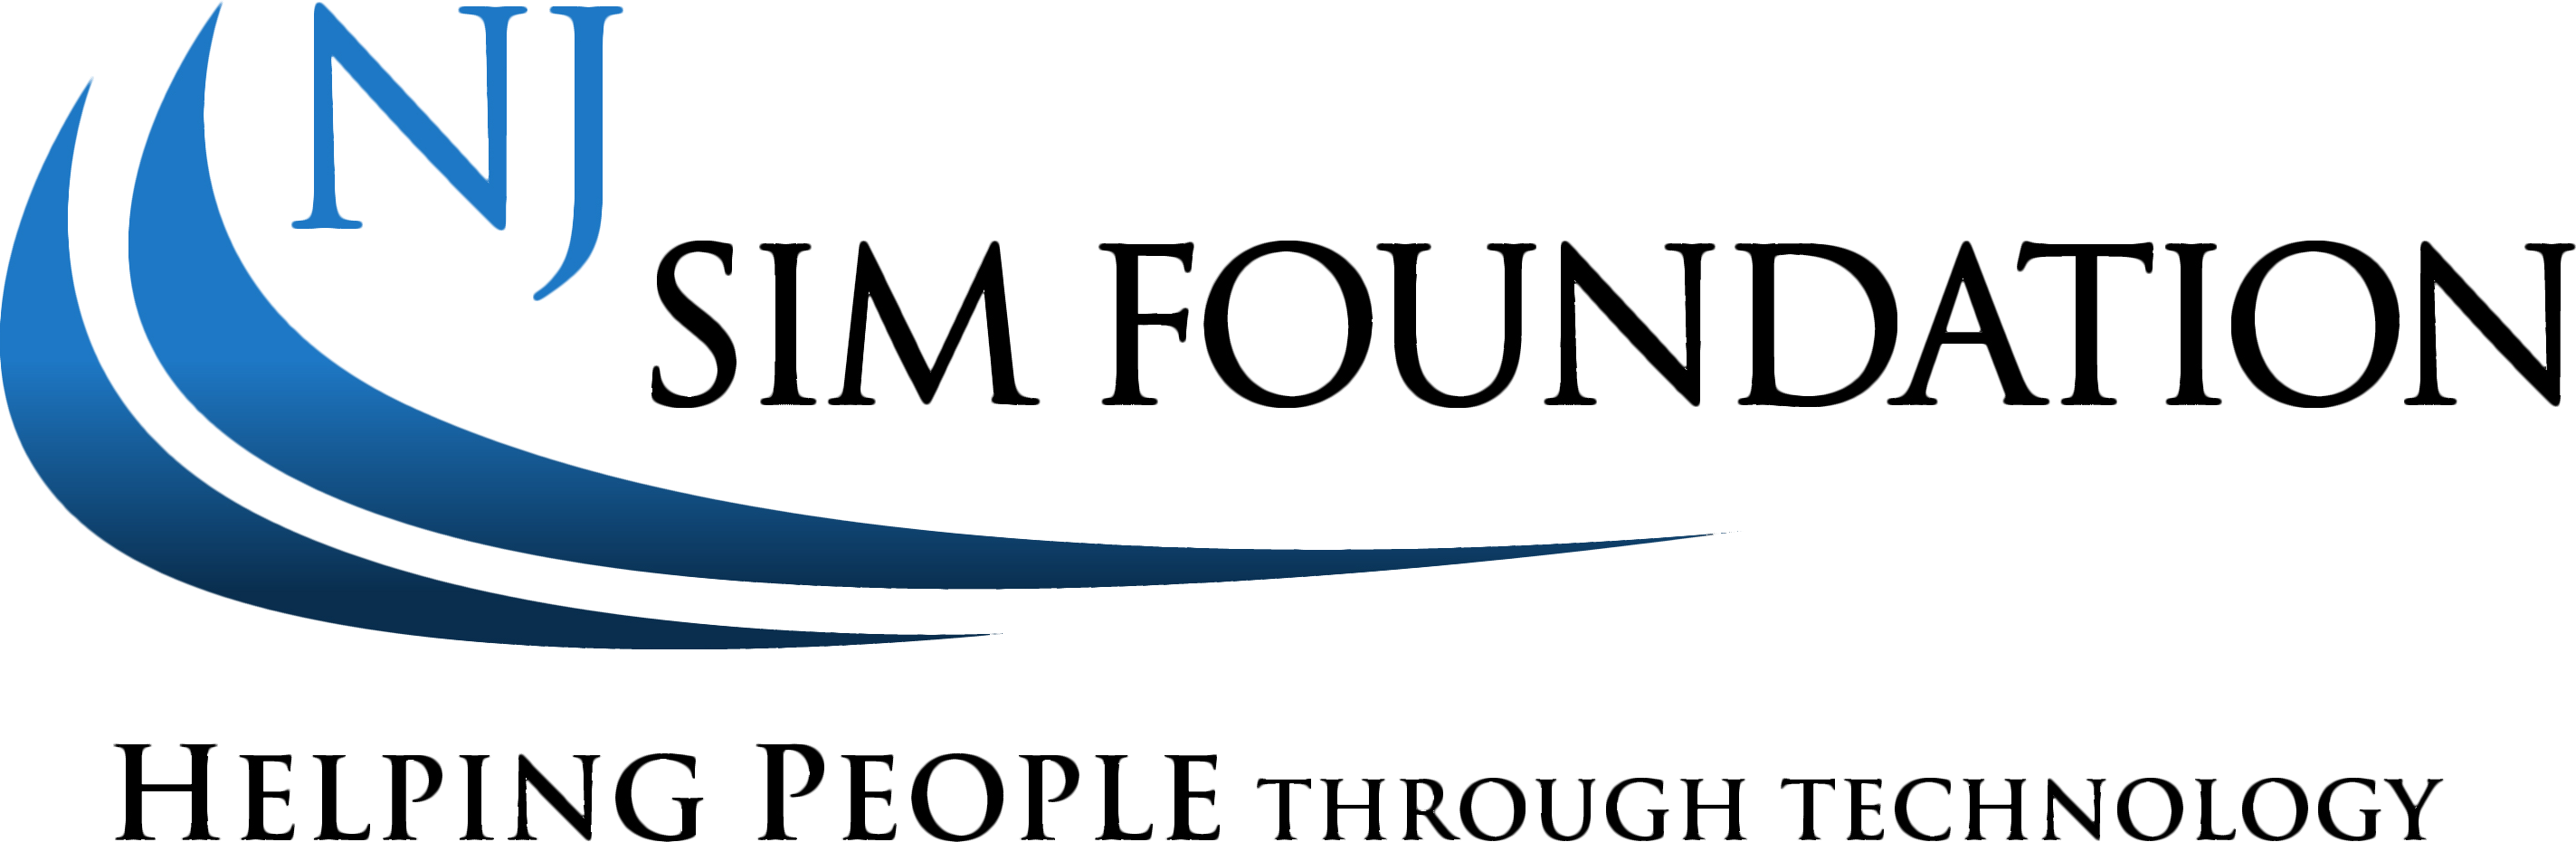 NJ SIM Foundation